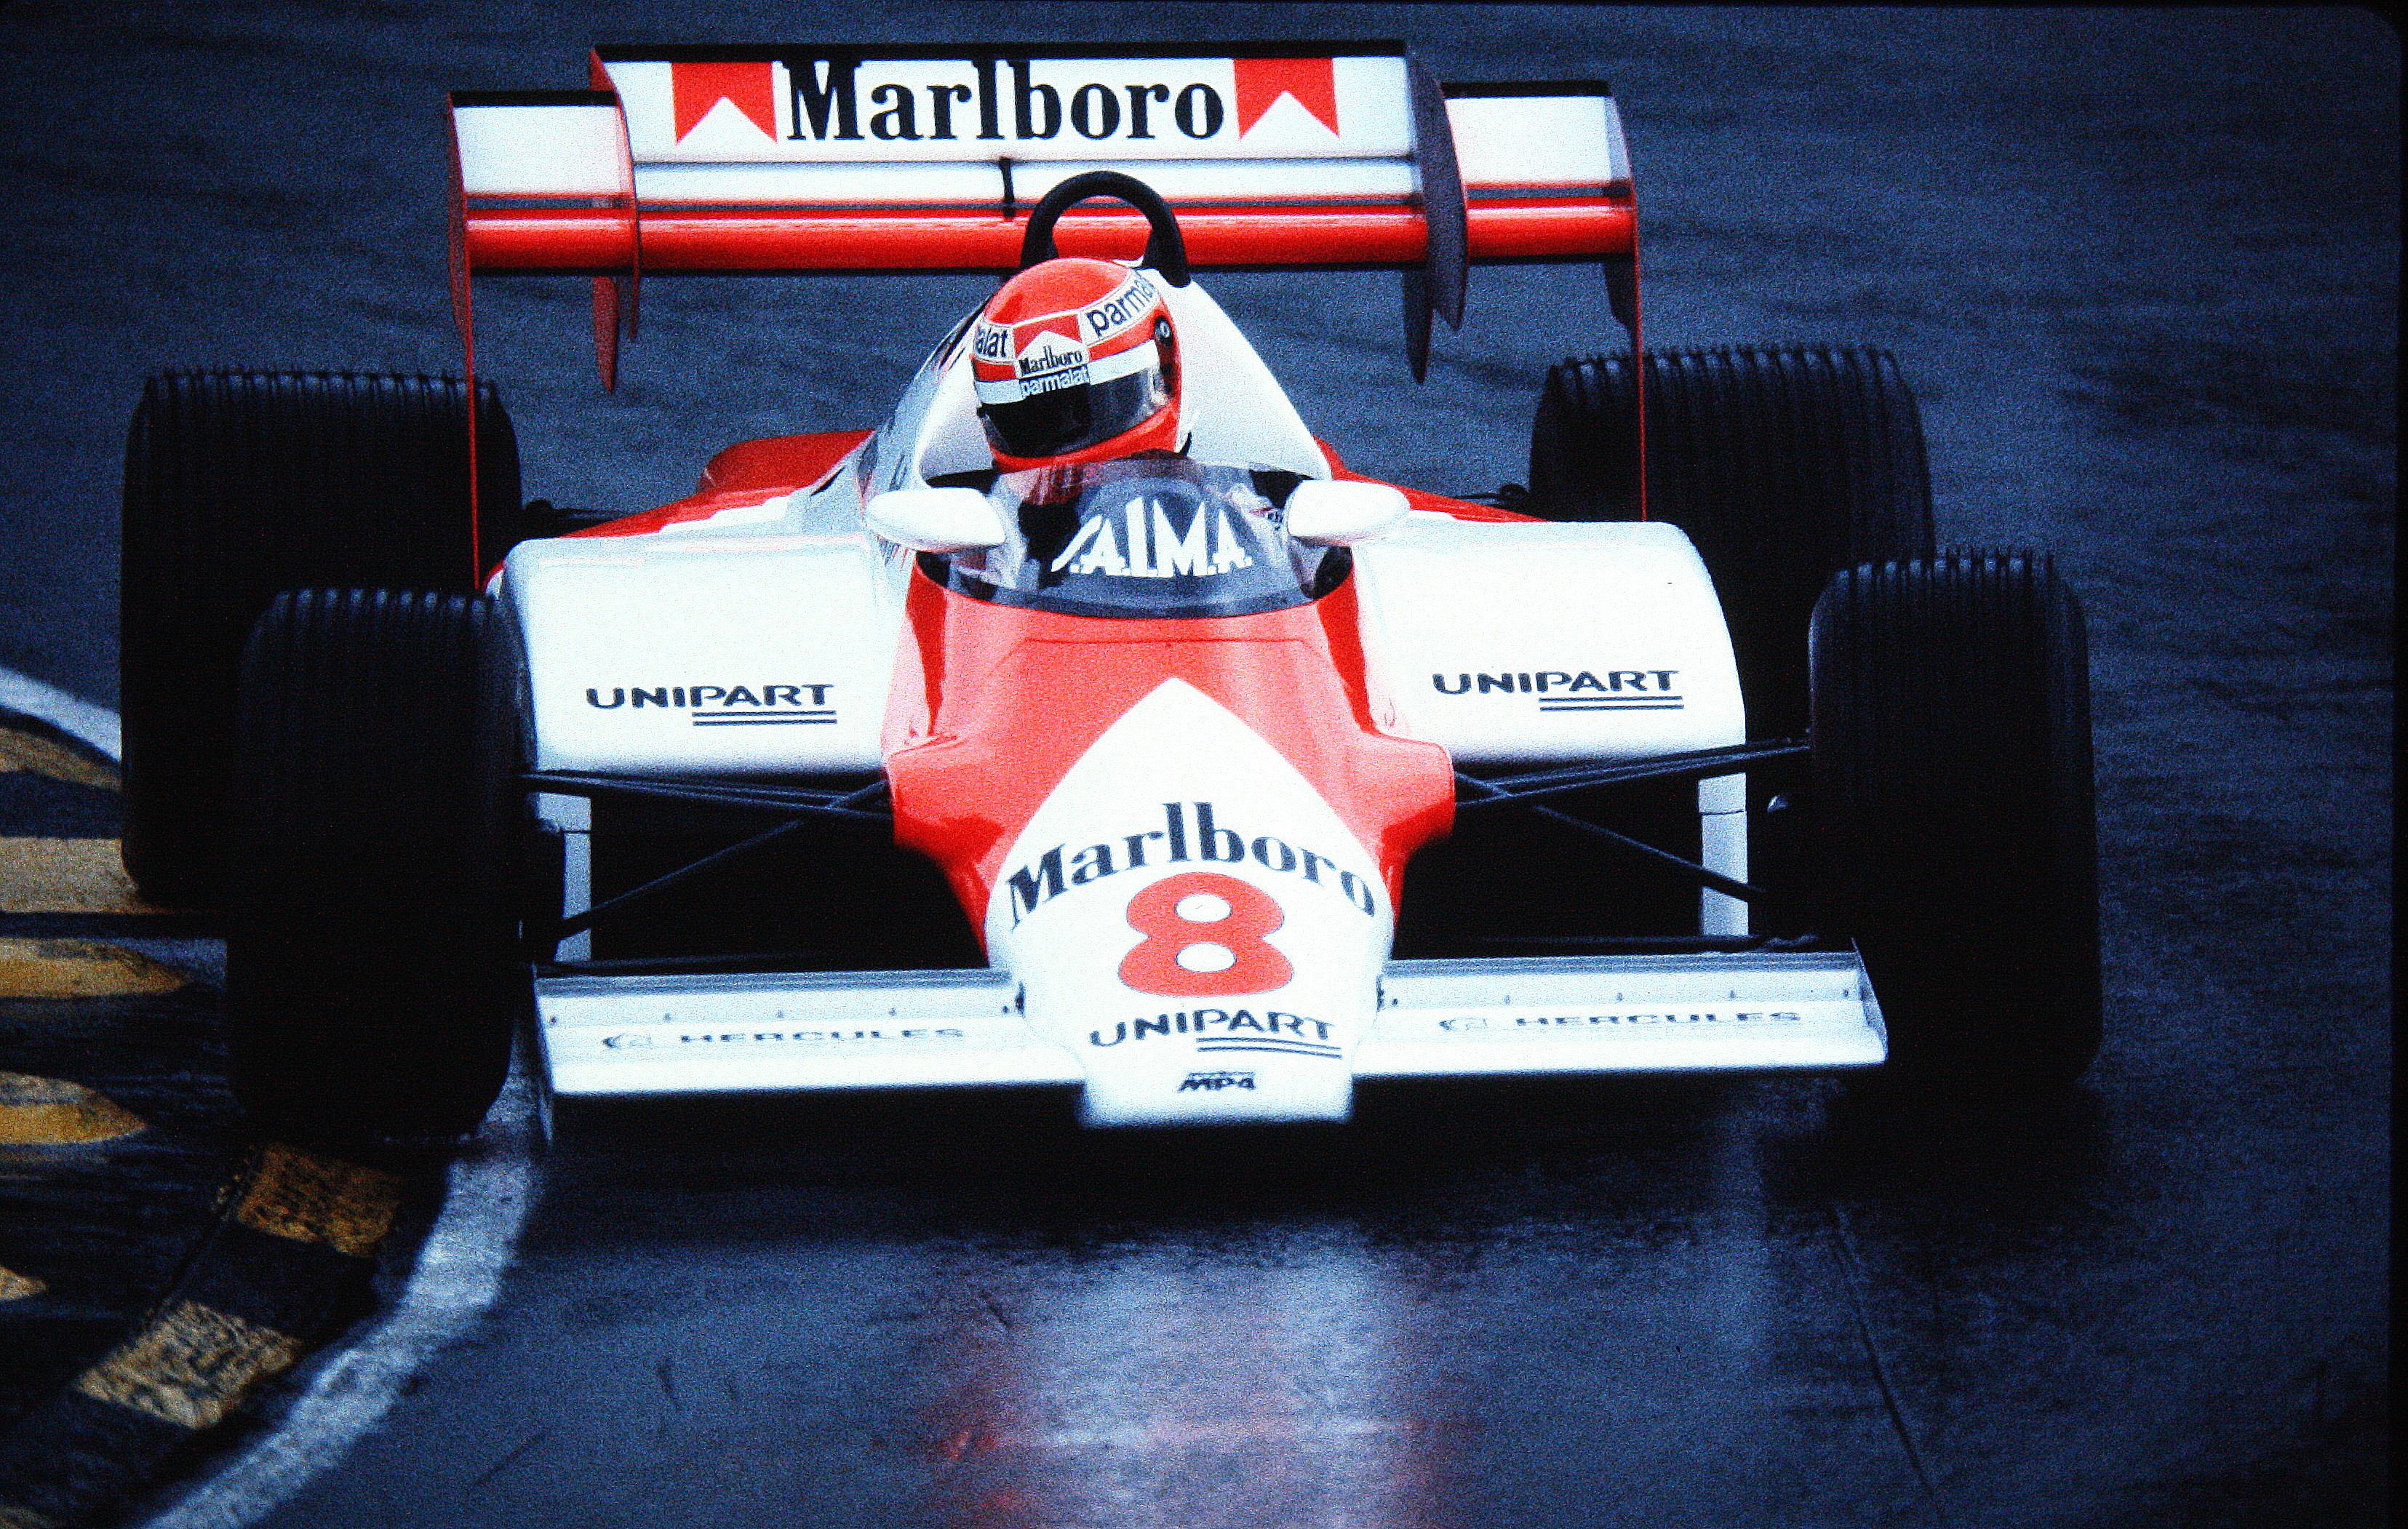 niki_lauda__europe_1983__by_f1_history-d